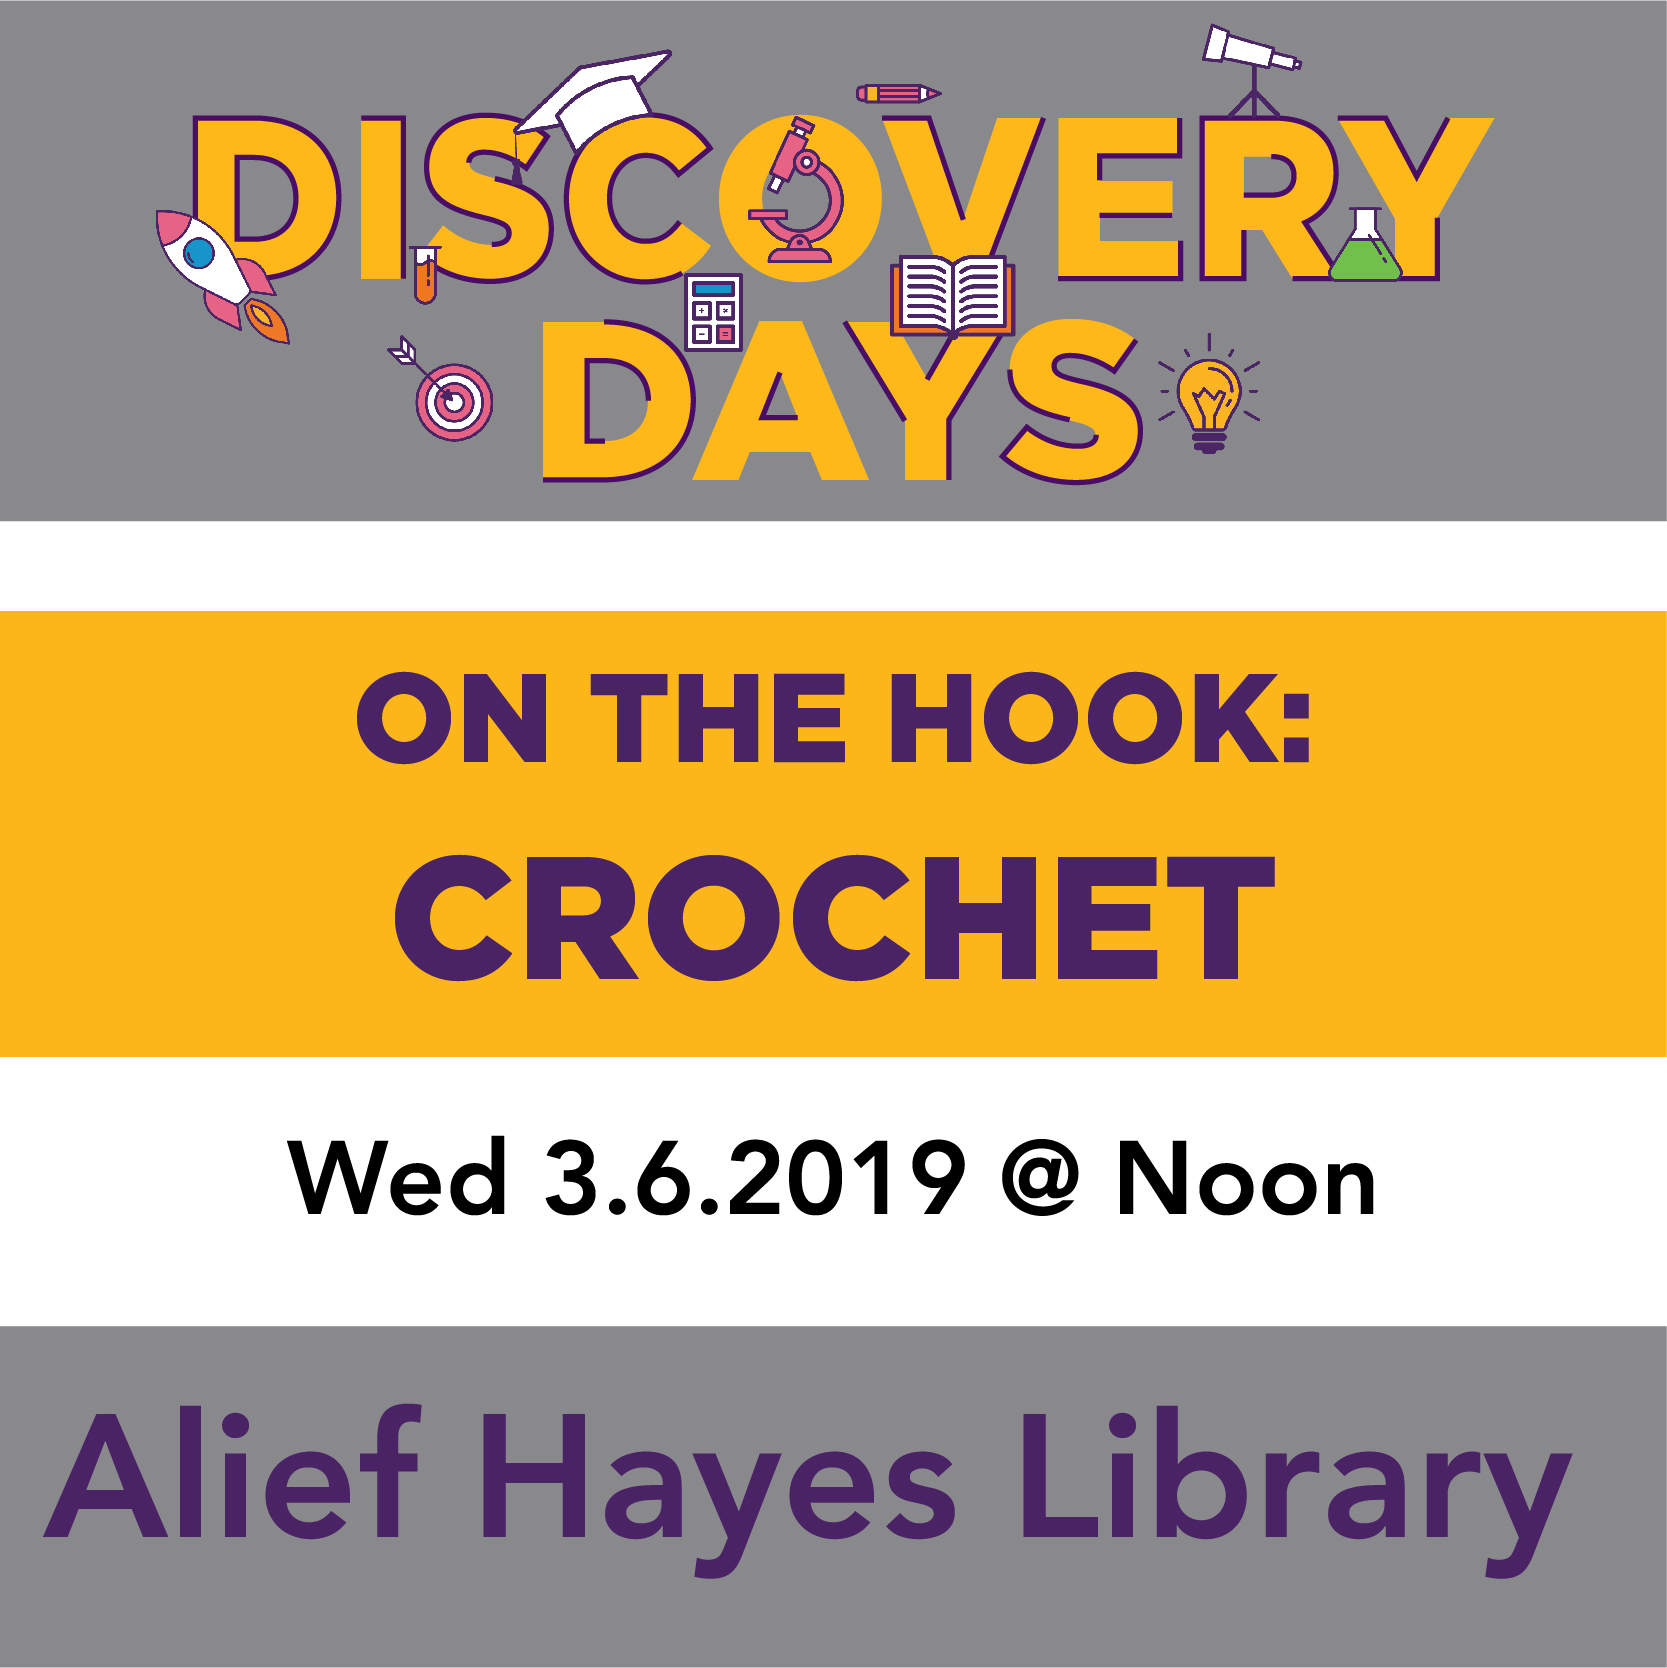 Discovery Days - On the Hook: Learn How to Crochet